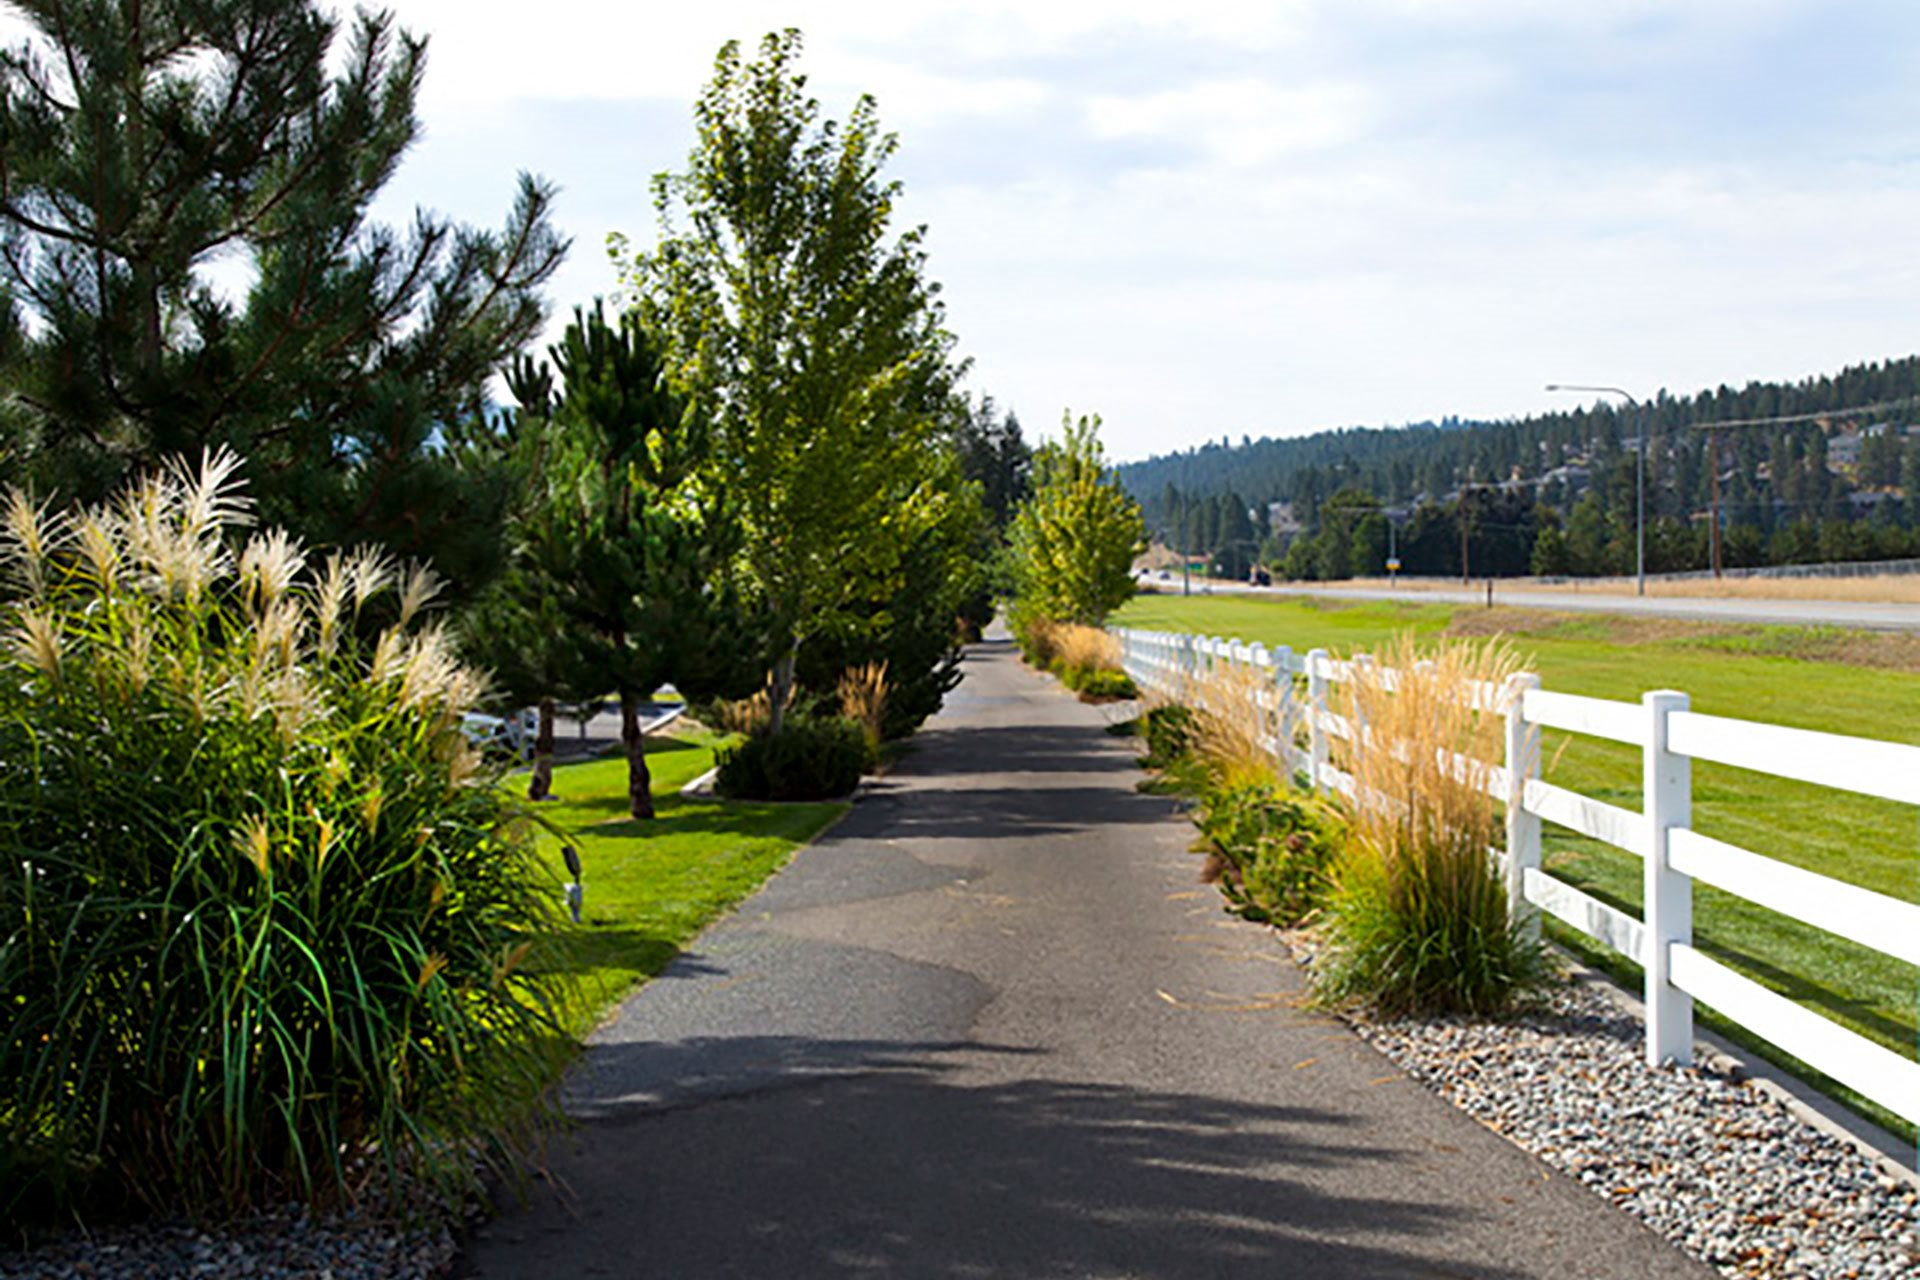 Pine Valley Ranch Apartments Trailhead and Hiking Paths